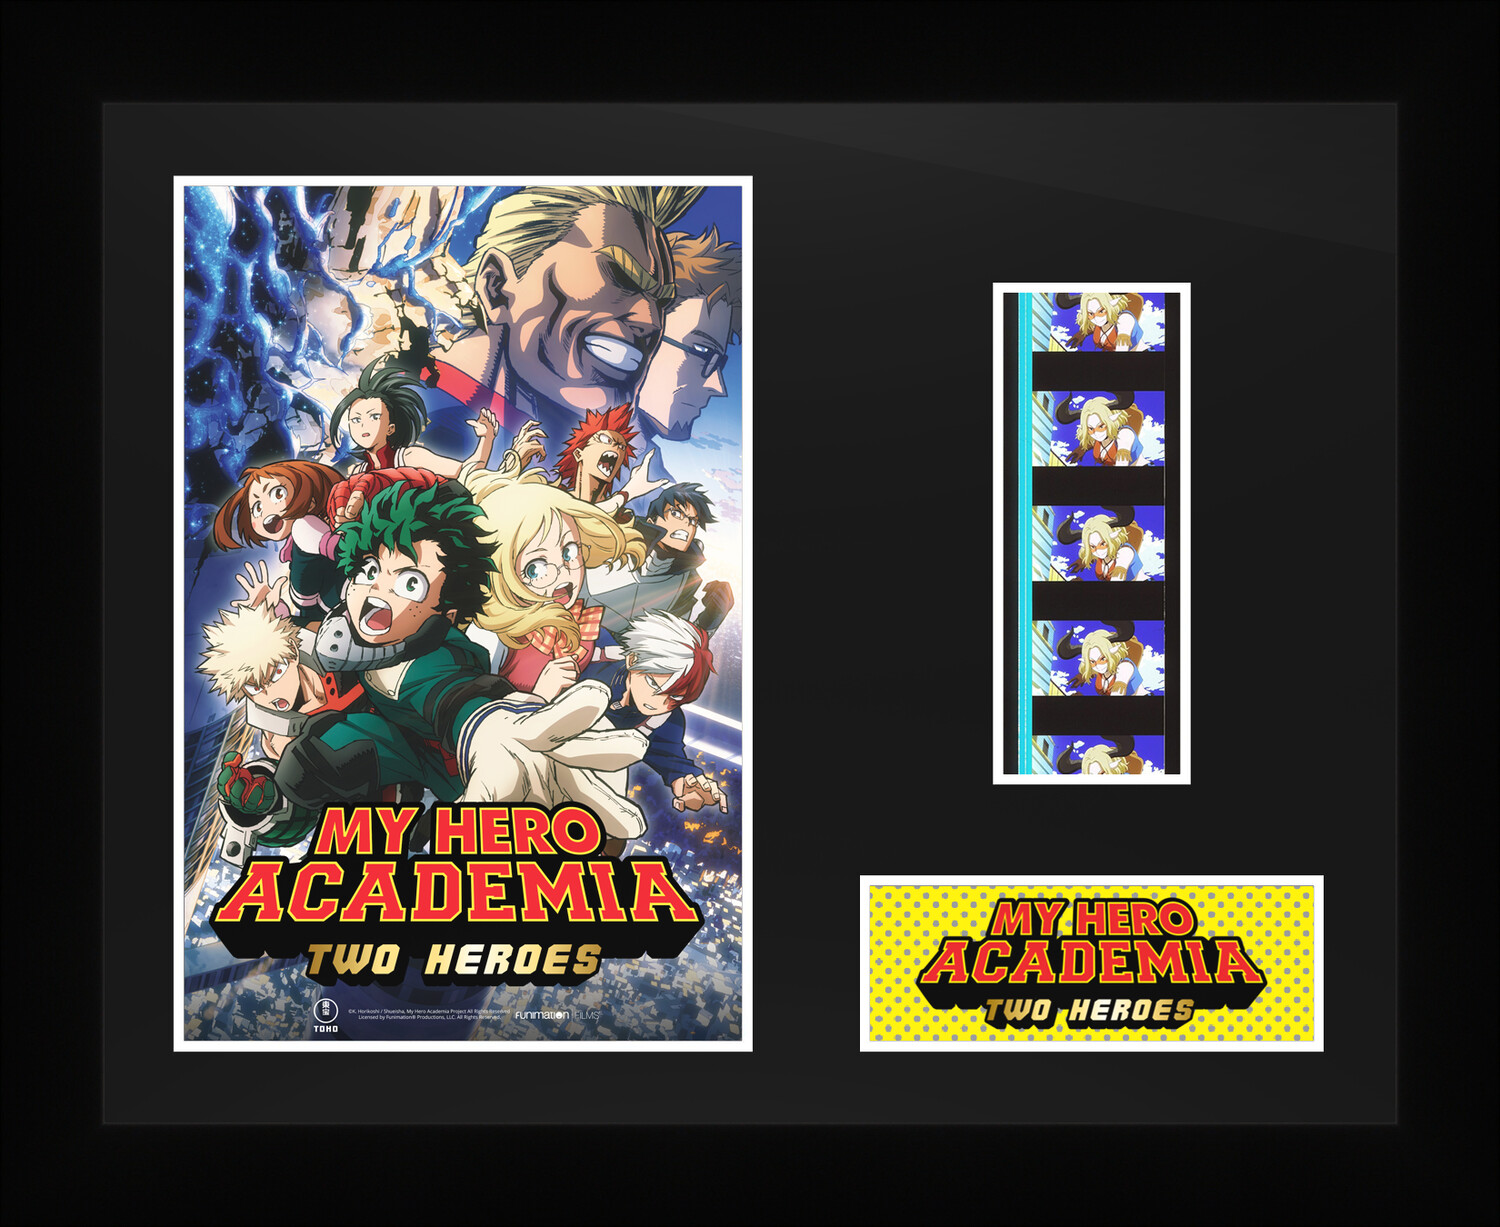 My Hero Academia: Two Heroes